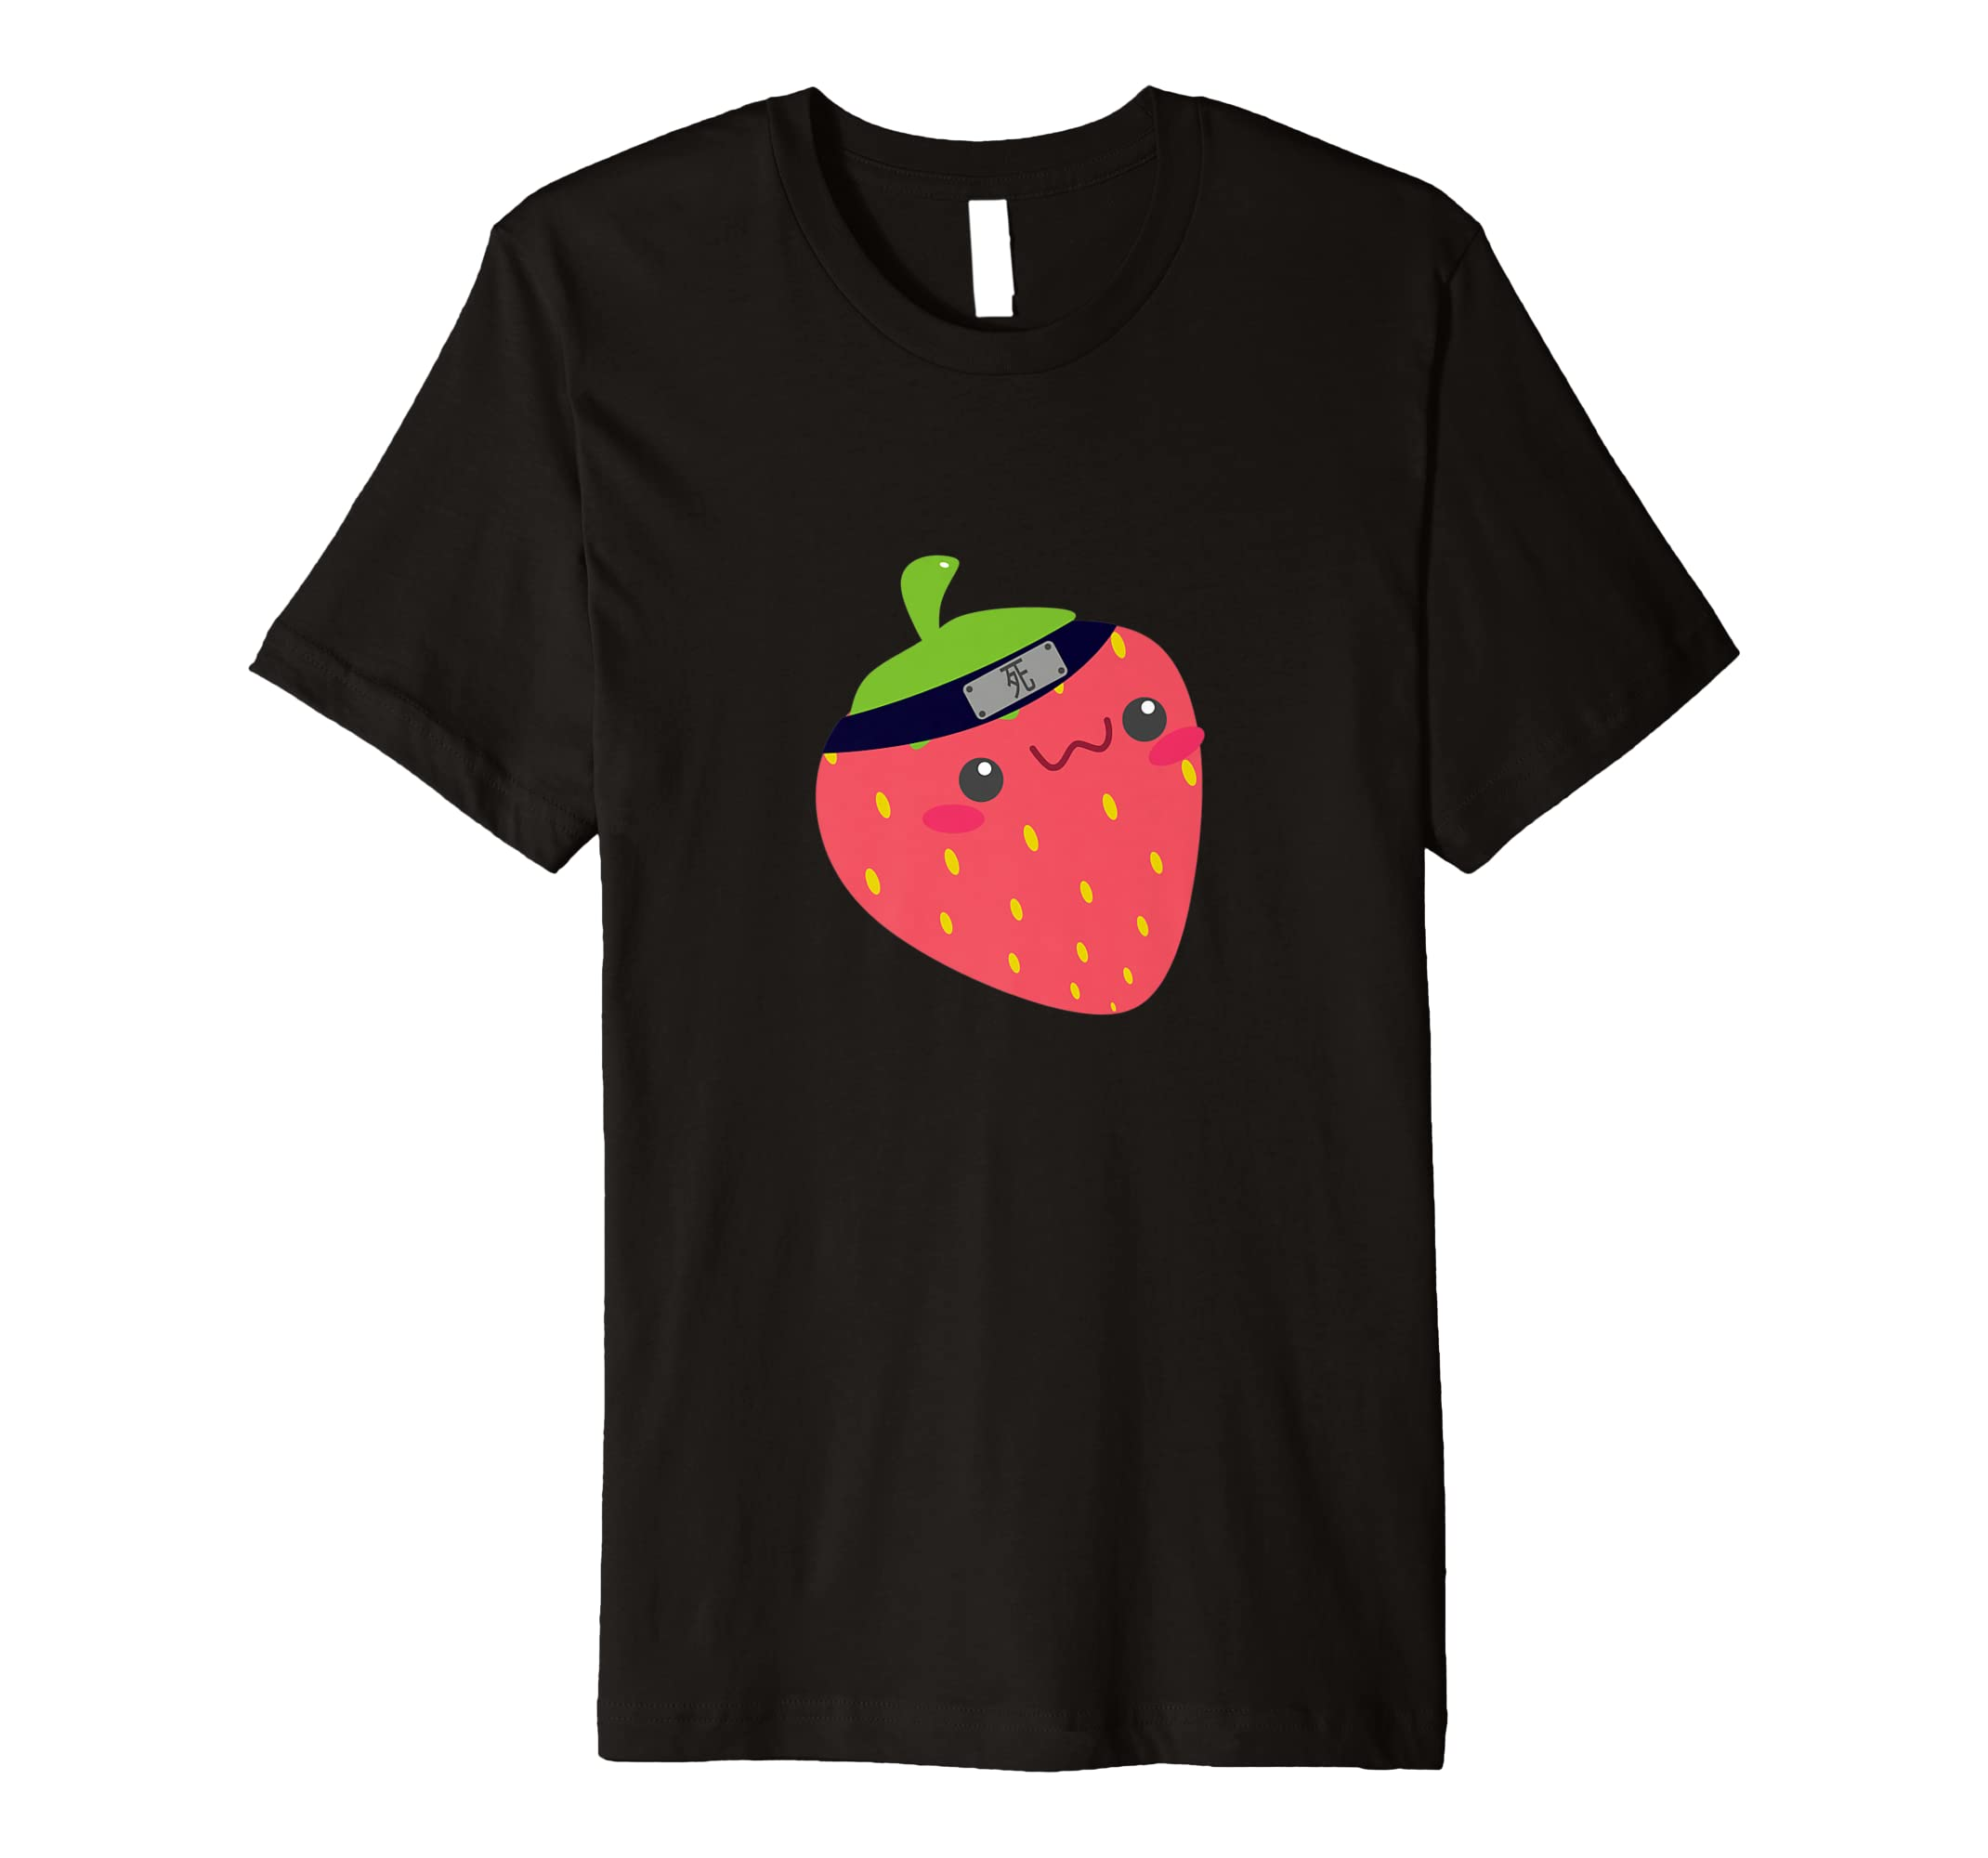 Amazon.com: Japanese Vaporwave Ninja Cute Strawberry Fruit ...